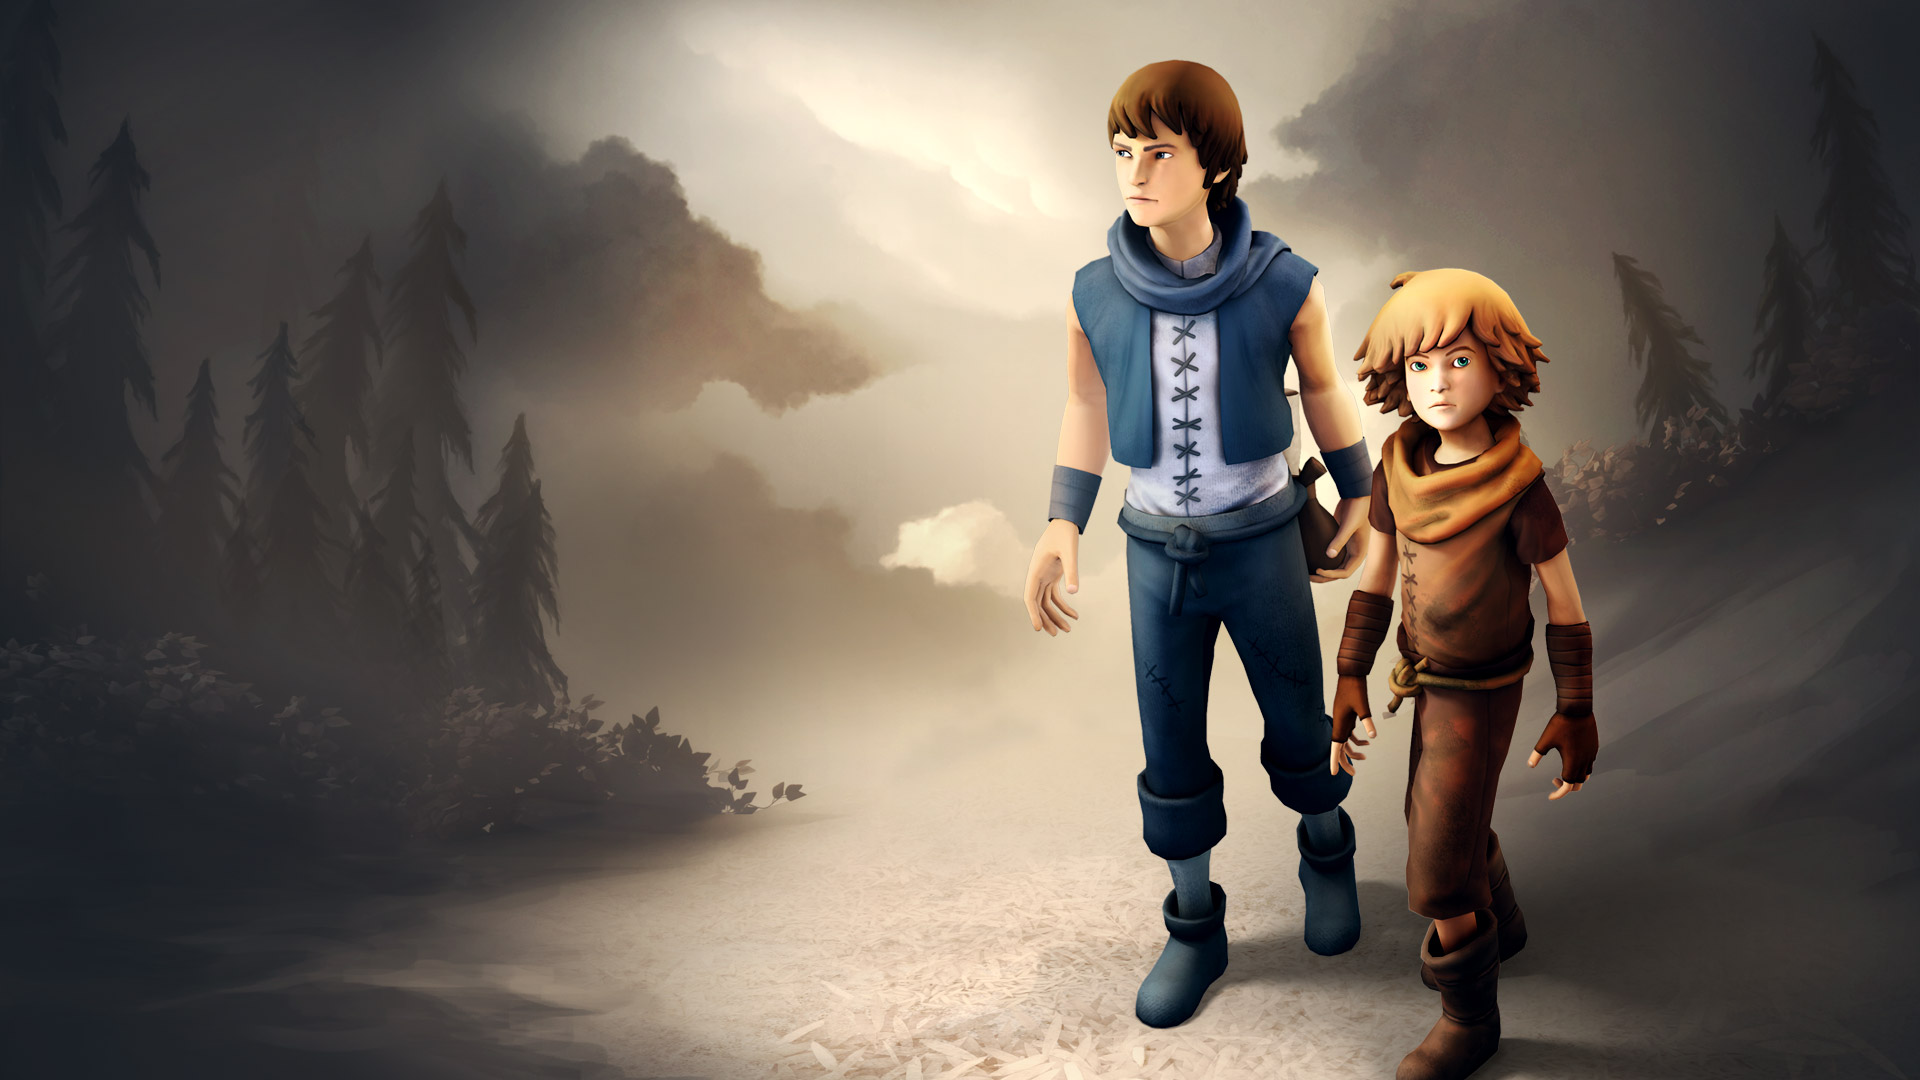 Brothers: A Tale of Two Sons Wallpaper in 1920x1080